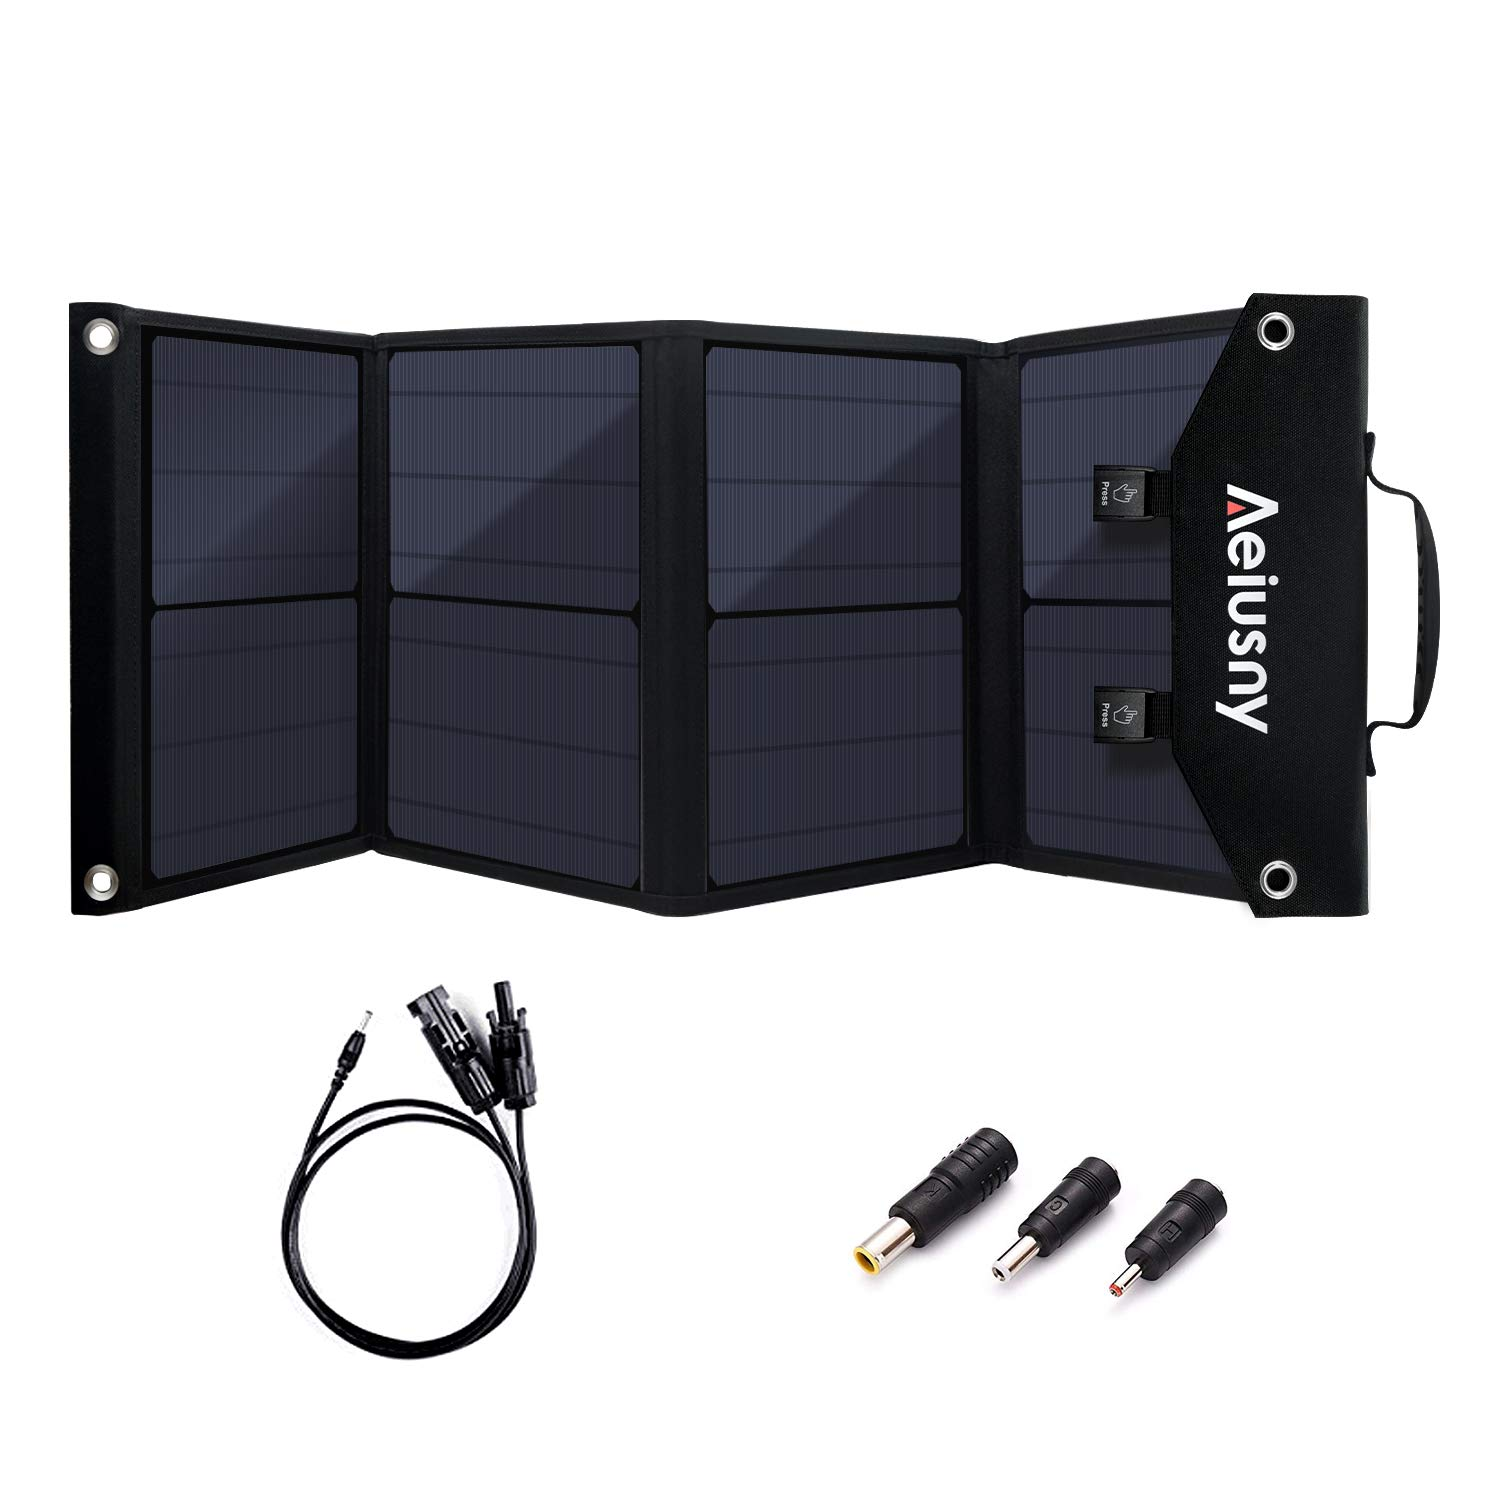 Aeiusny Solar Panel Foldable 60W Portable Solar Charger for Suaoki Jackery Webetop Portable Generator Goal Zero Yeti Power Station USB Devices, QC3.0 USB Ports Including Aeiusny Generator Solar Cable